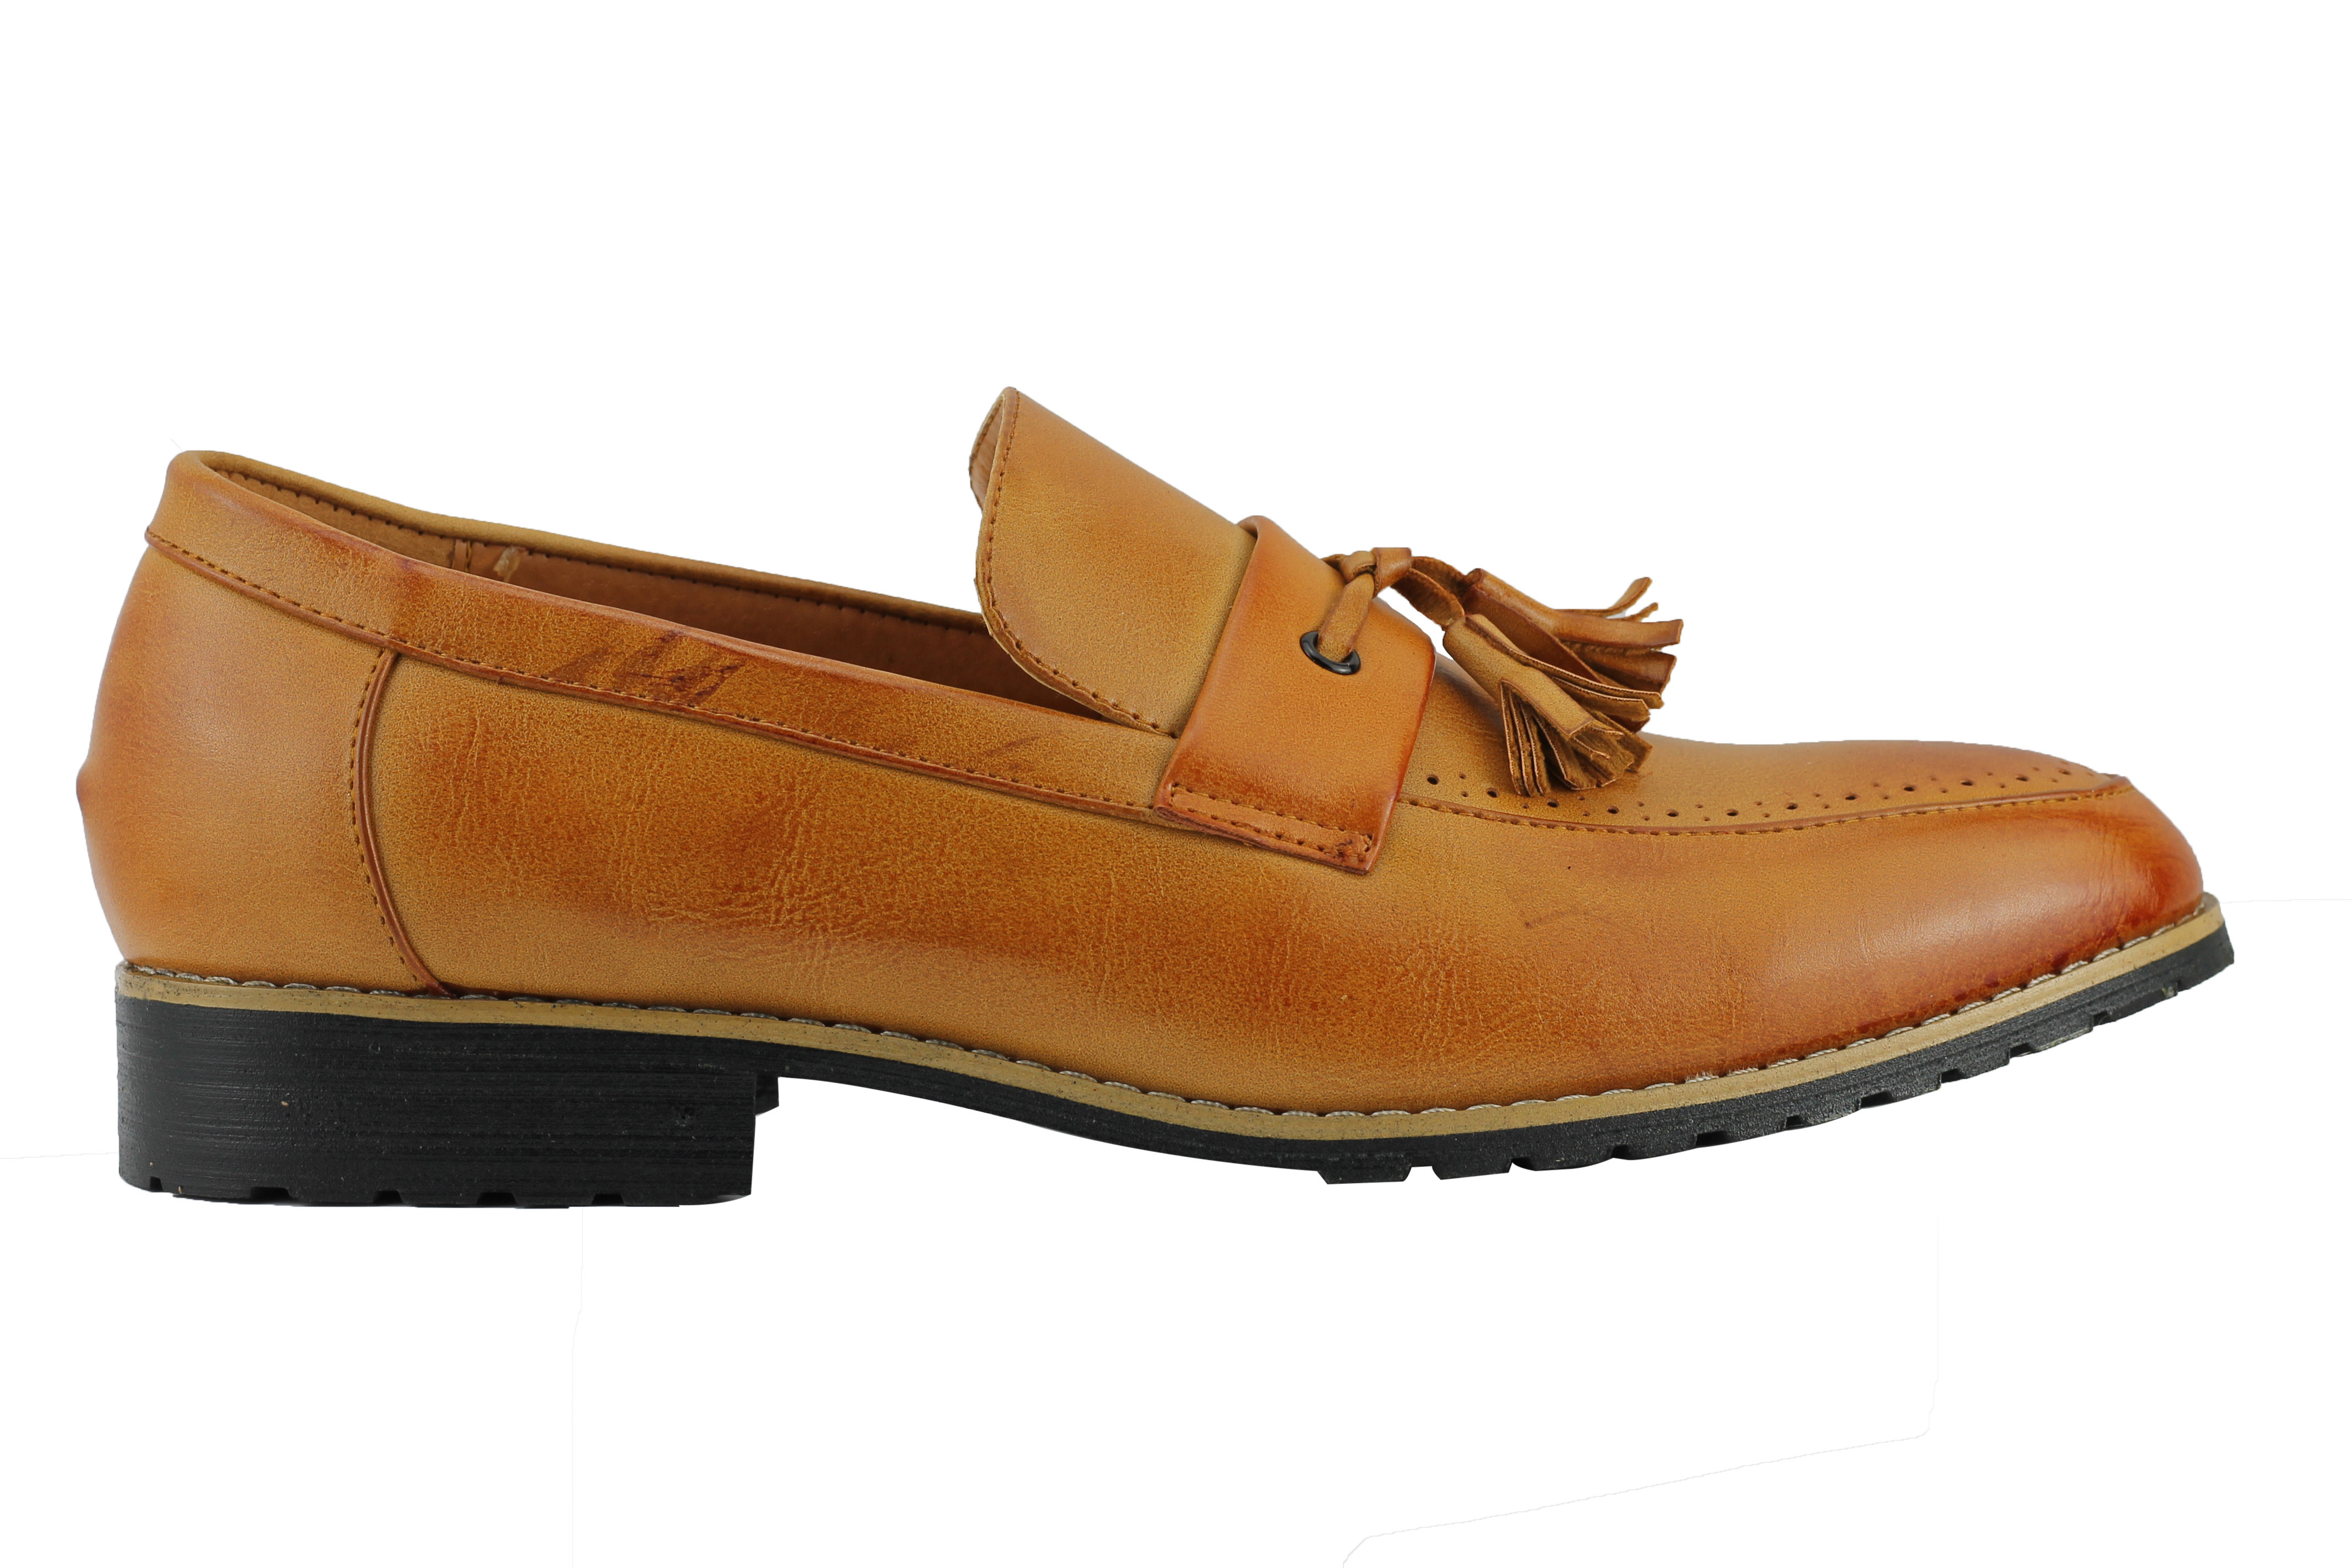 Mens-Leather-Lined-Maroon-Black-Tassel-Loafer-Smart-Casual-Slip-on-Driving-Shoes thumbnail 15